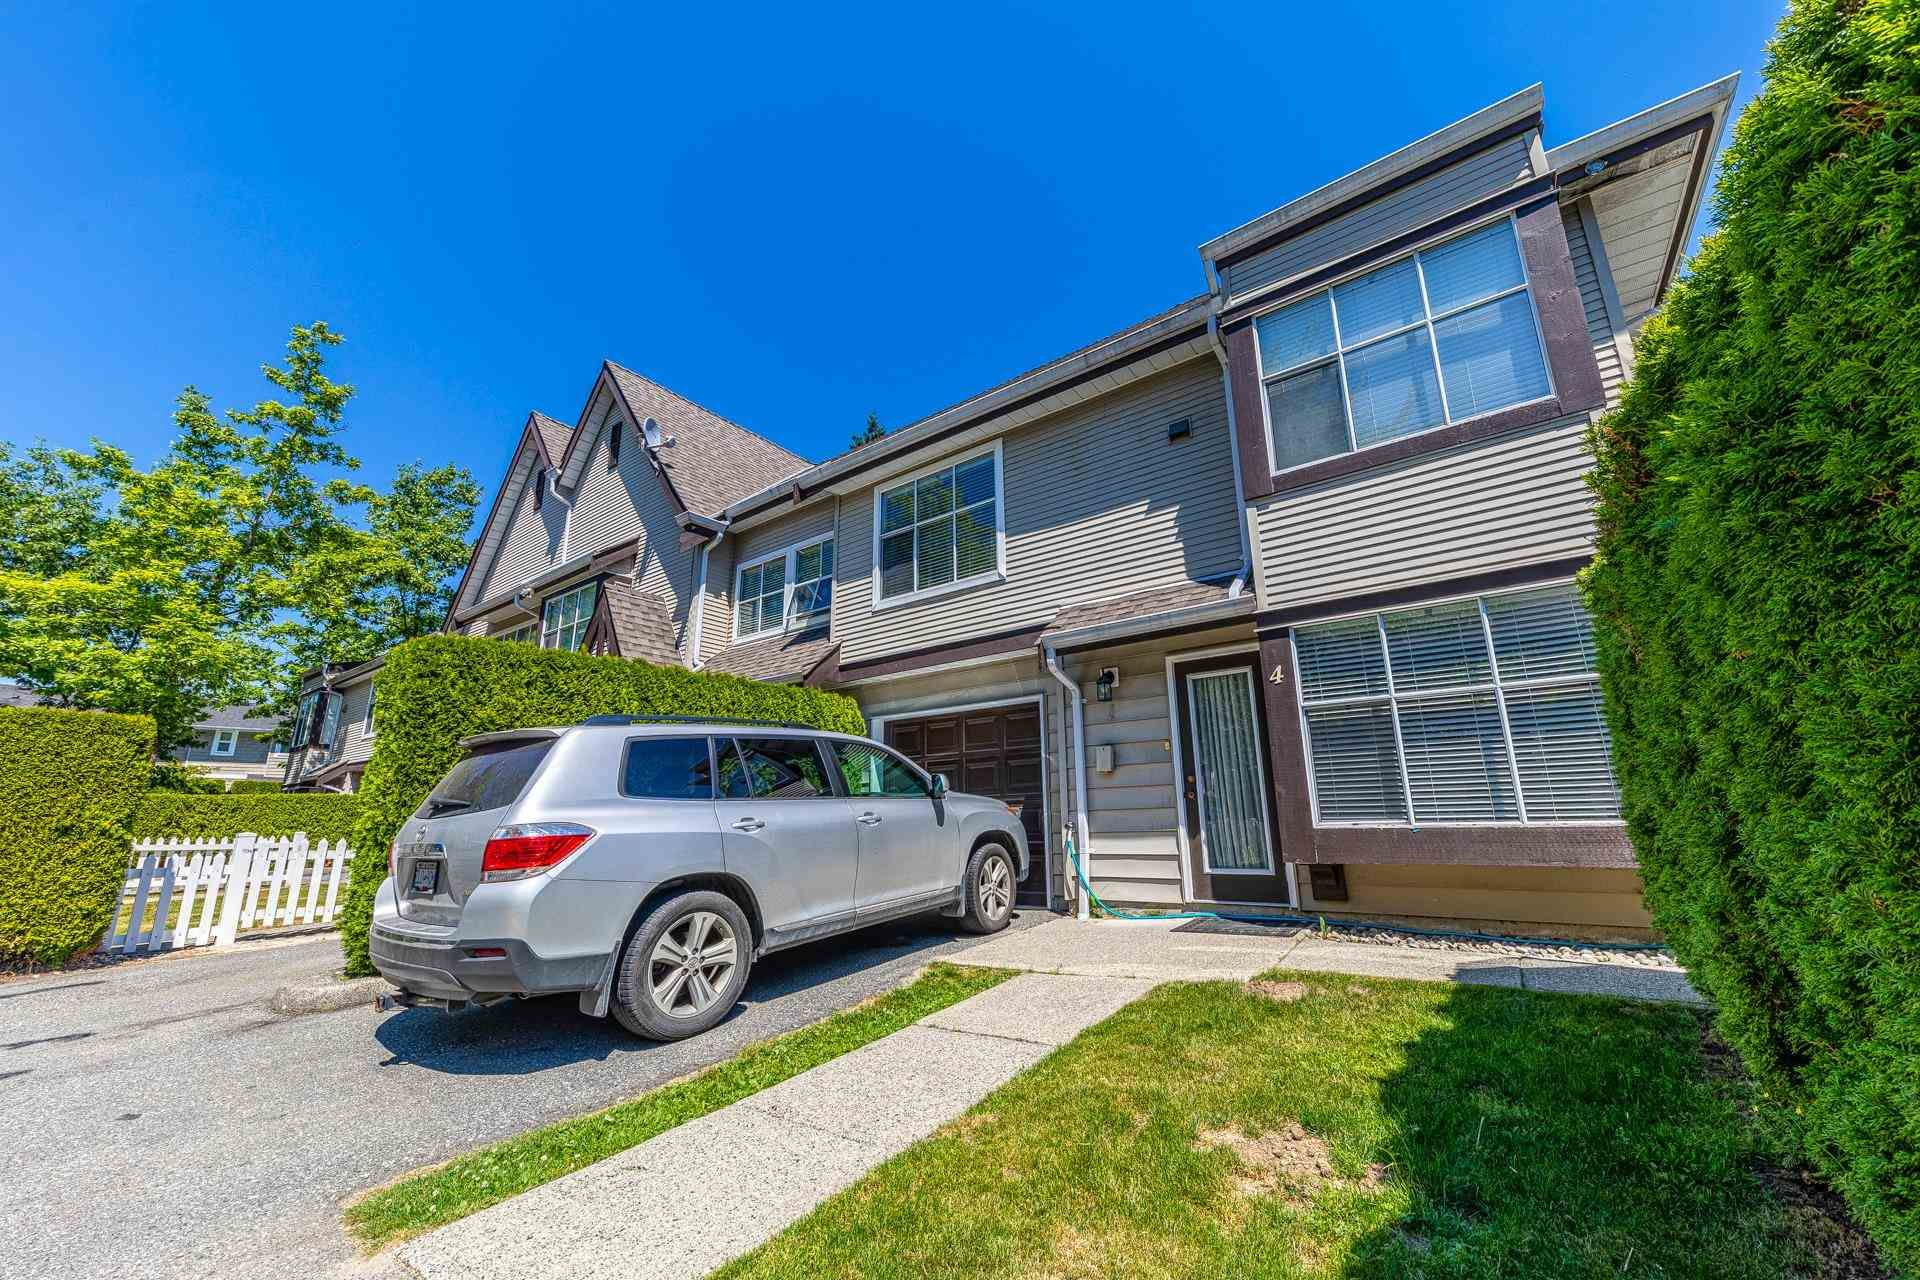 """Main Photo: 4 12099 237 Street in Maple Ridge: East Central Townhouse for sale in """"Gabriola"""" : MLS®# R2596646"""